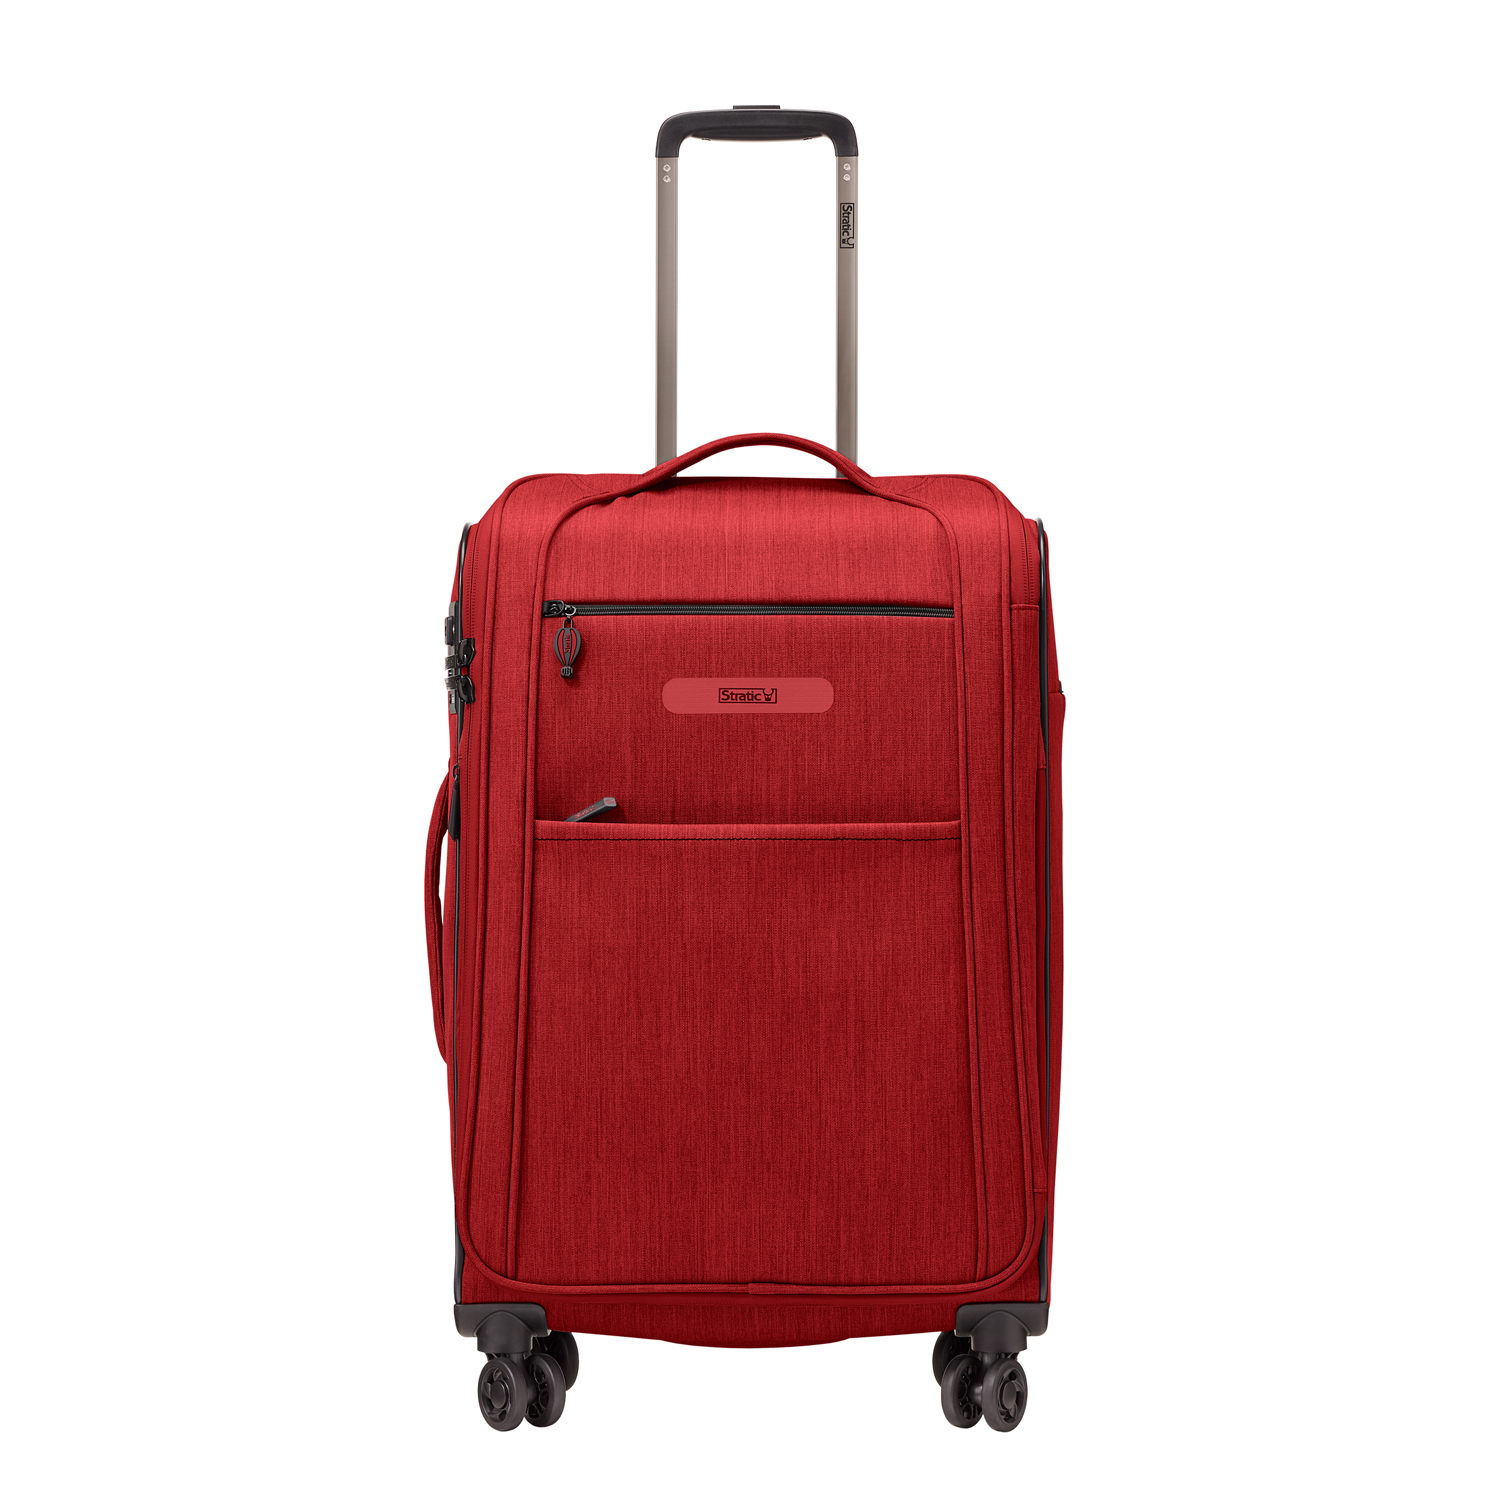 Stratic Floating Koffer (Trolley) Red 65cm